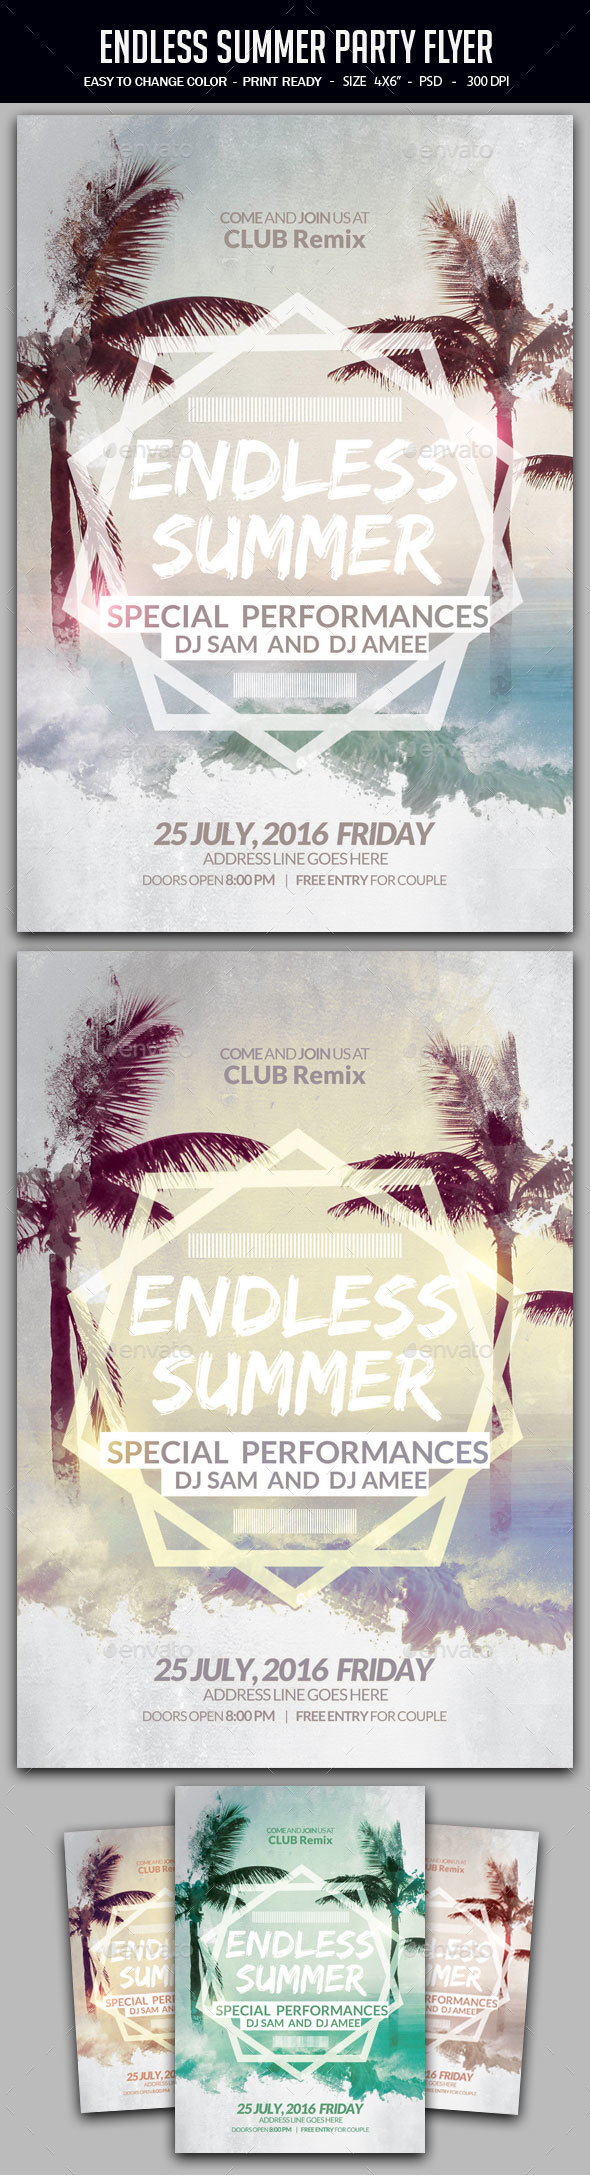 Endless Summer Party Flyer - Clubs & Parties Events